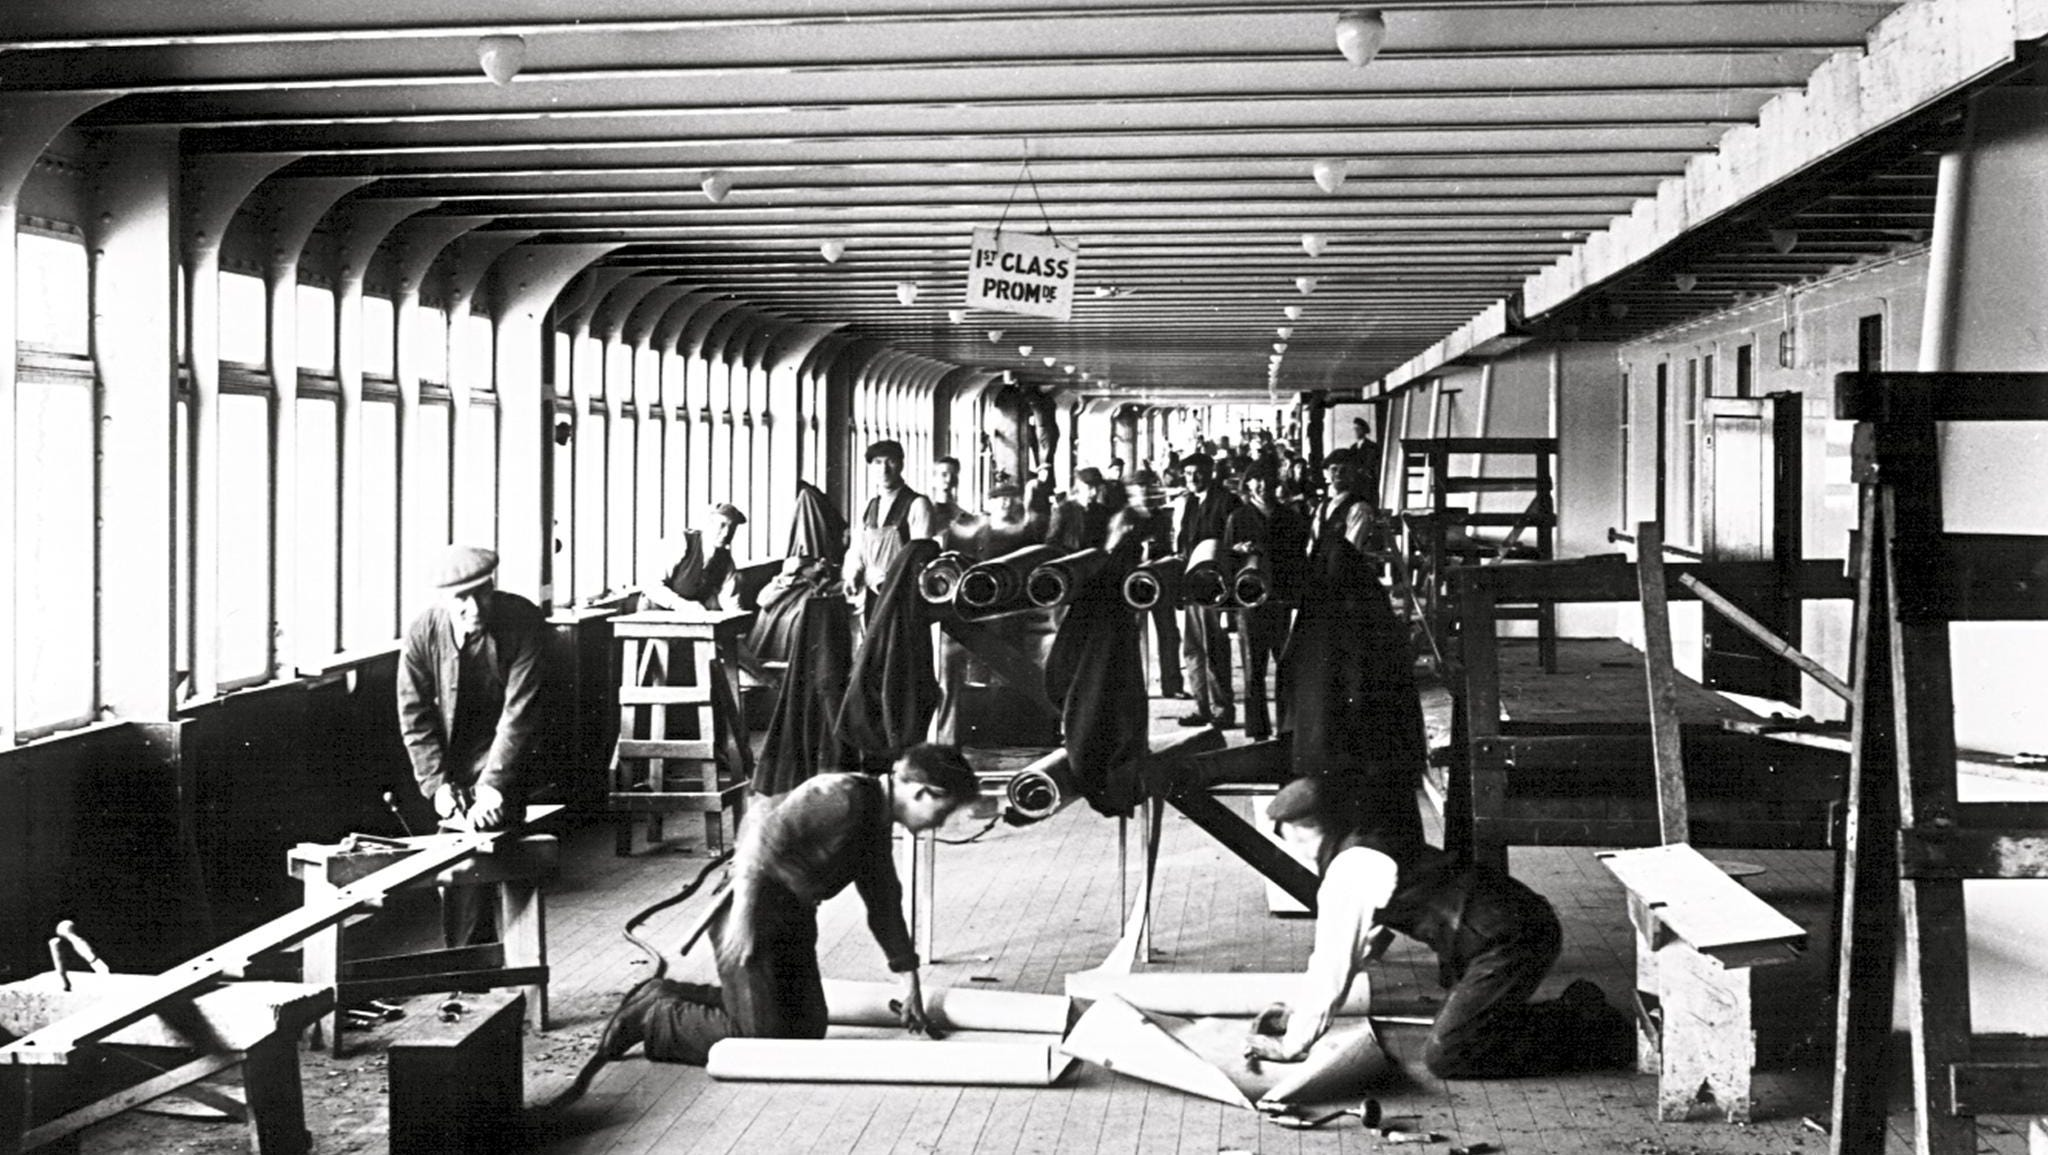 Fitting out the Queen Mary continued through May of 1936. This image shows workers installing the teak in the first-class section of the ship's enclosed promenade deck.